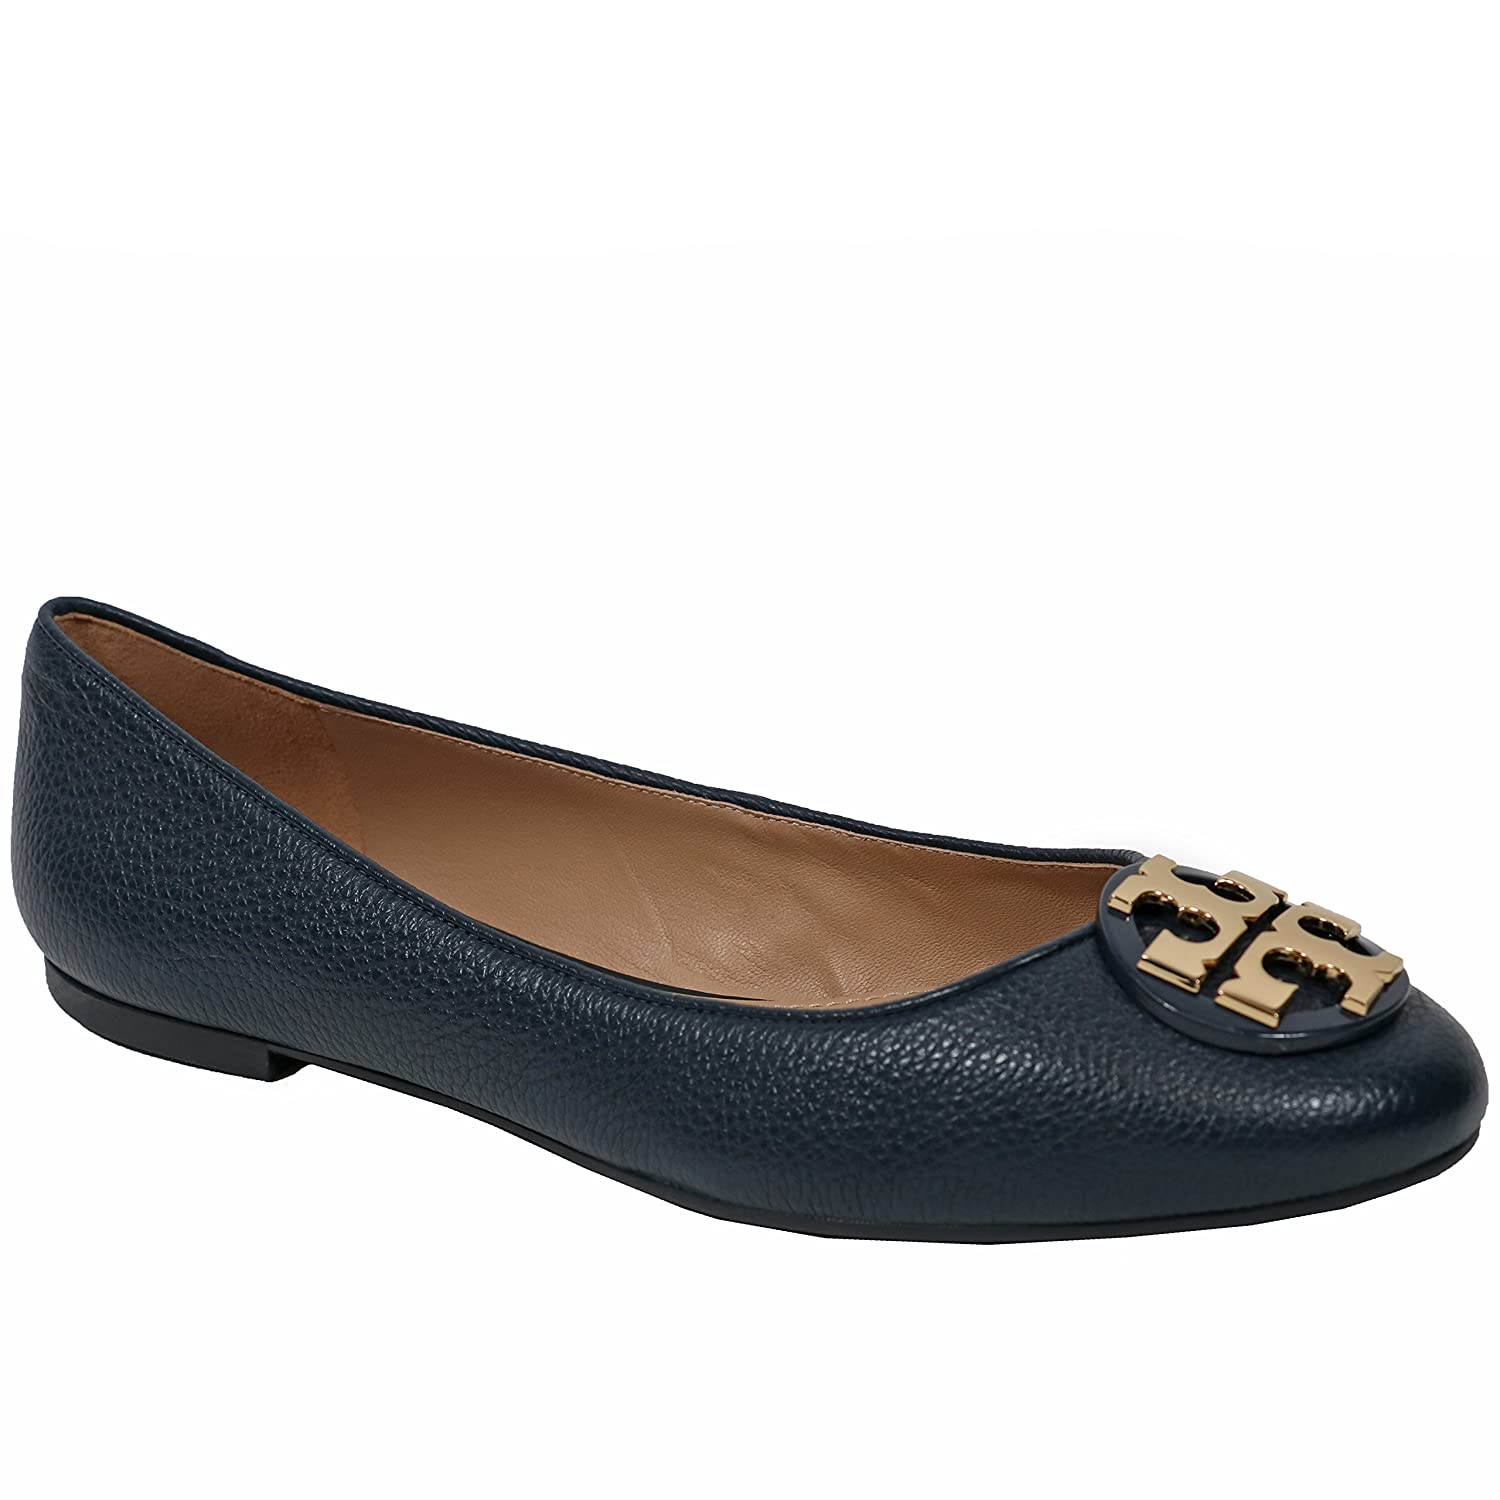 aa59f4c4a Tory Burch Women s Claire Ballet Flat Flat Flat Leather Shoes Bright Navy  B07DZJ5J82 10 M US